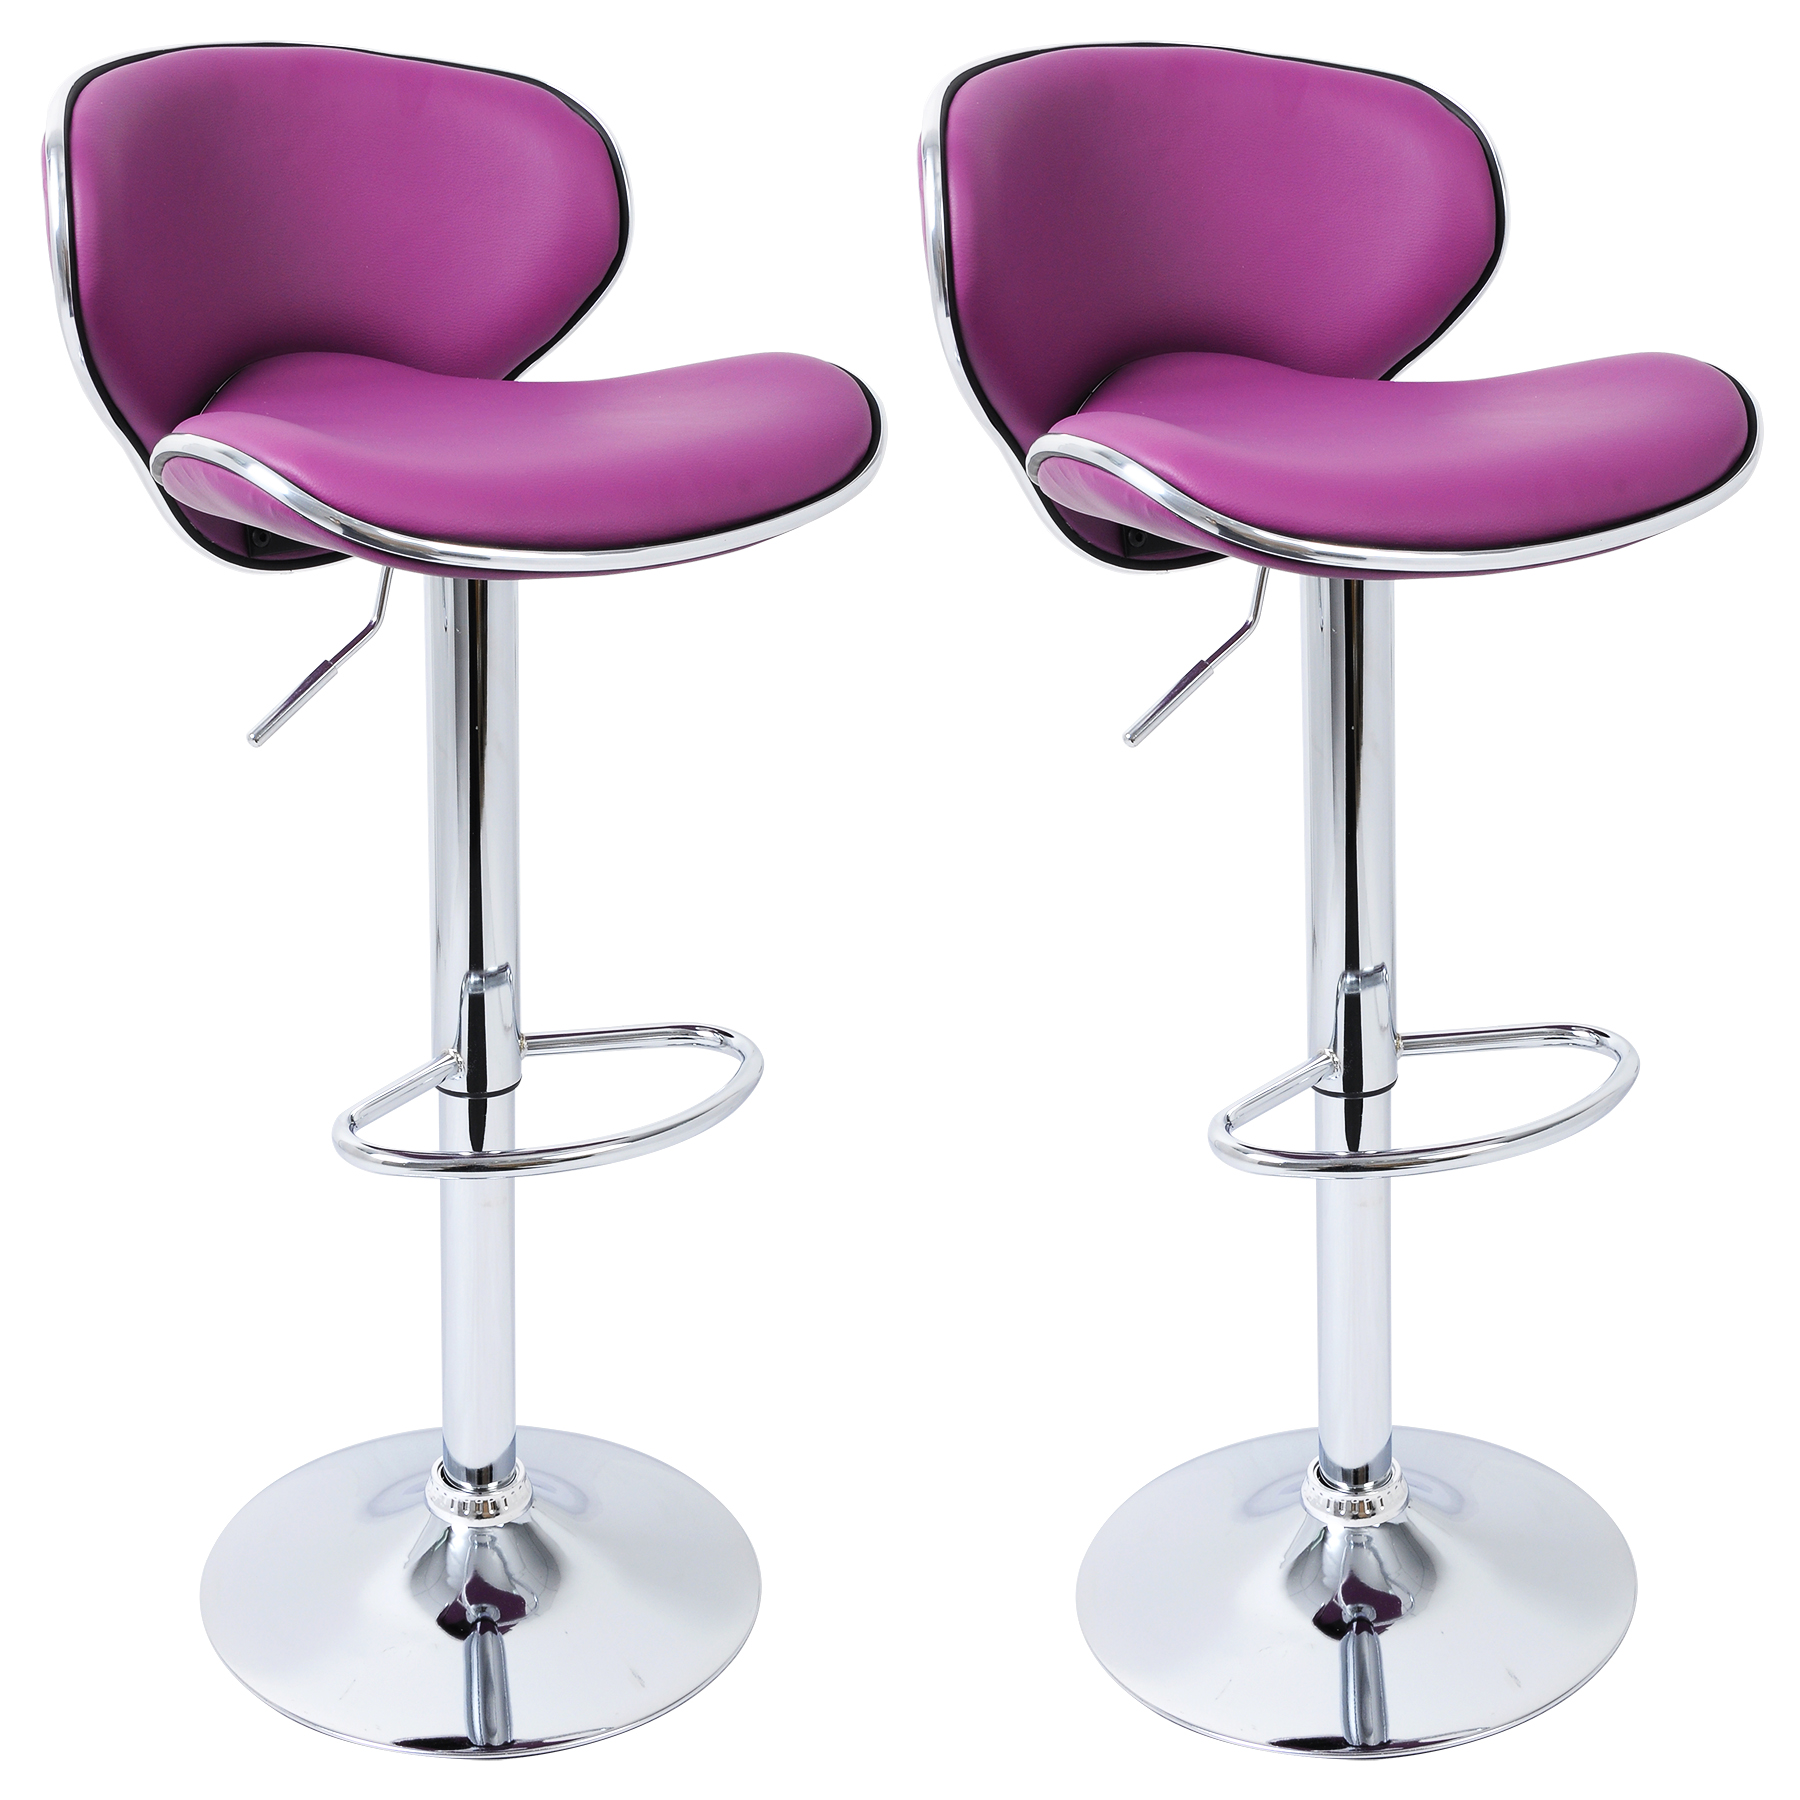 2 X Bar Stools Faux Leather Swivel Breakfast Kitchen Stool Chairs Purple U048